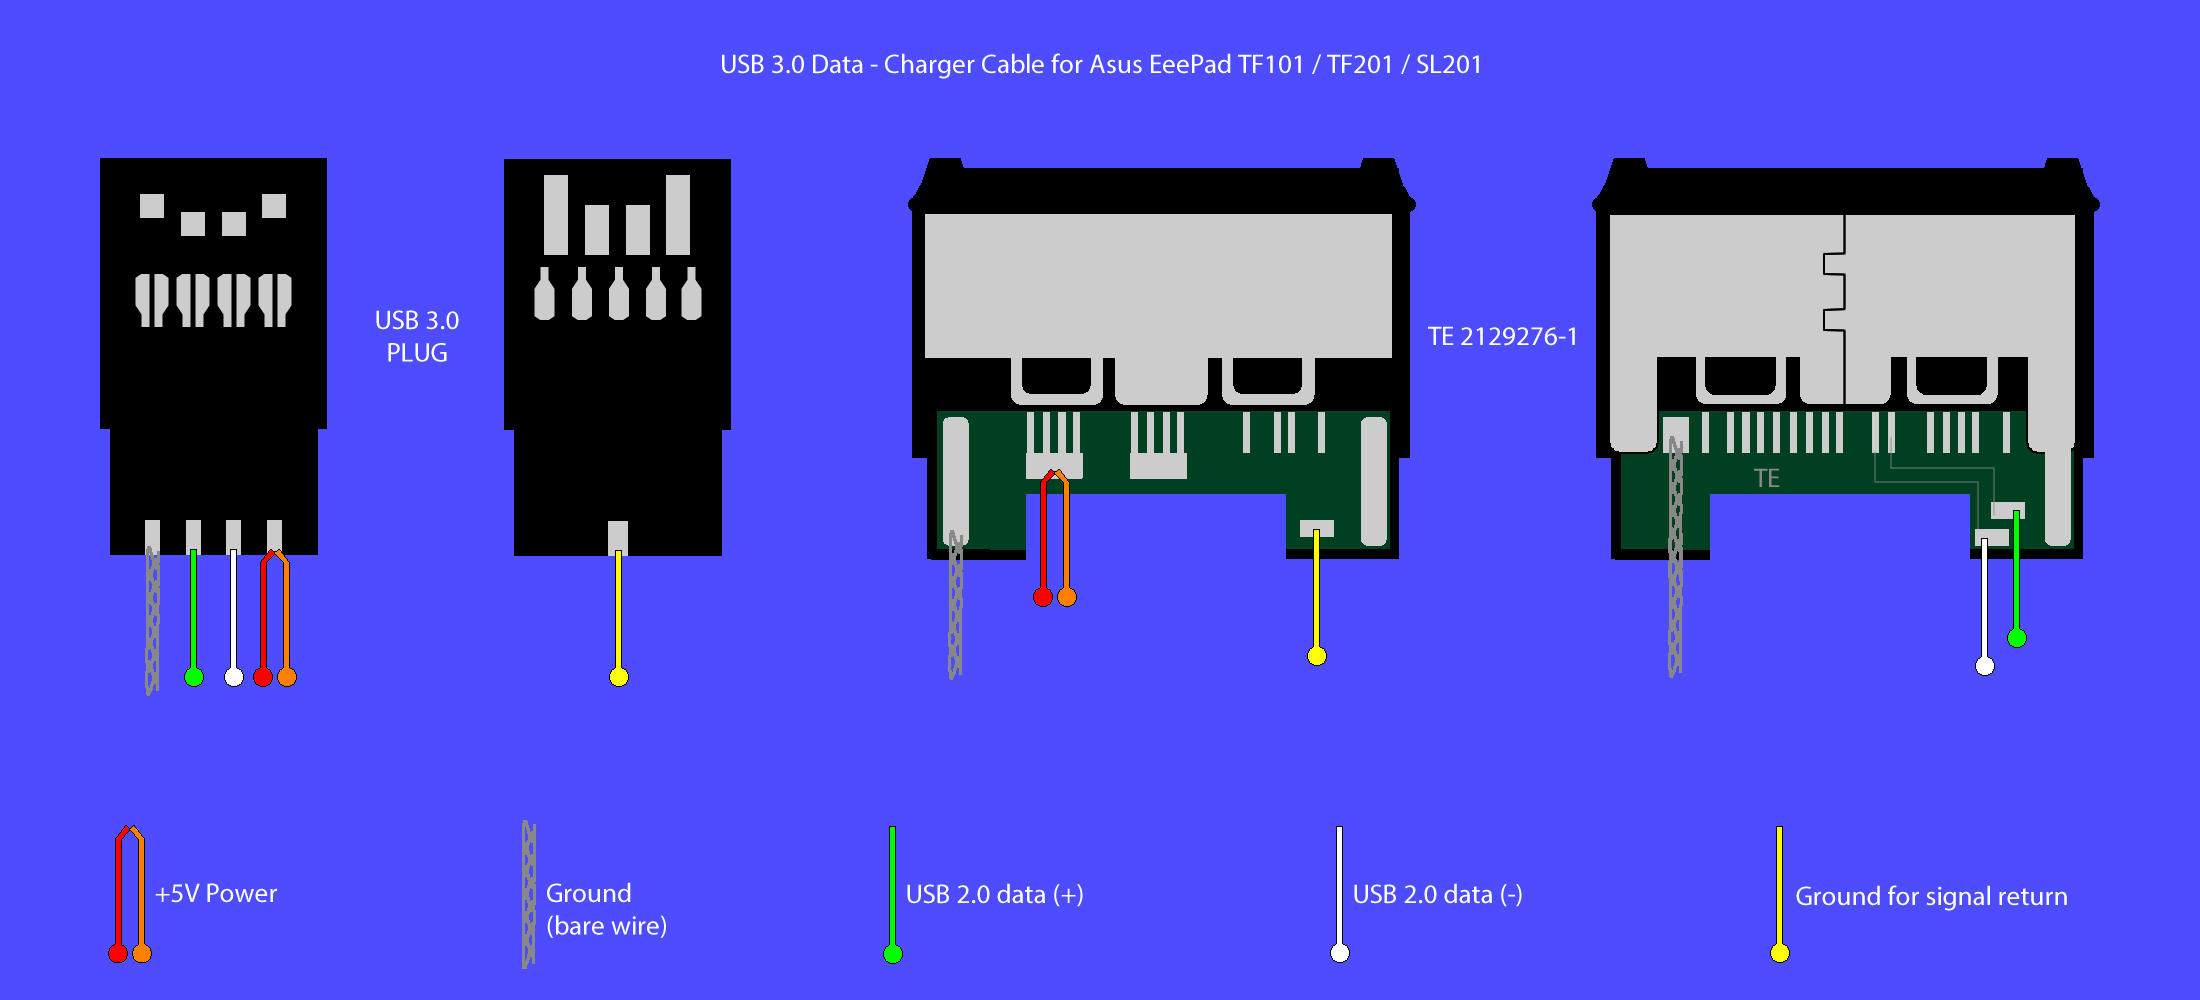 Soldering - Rewiring Usb Connector On Asus Transformer - Super User - Usb Wiring Diagram Cable To 15 Plug